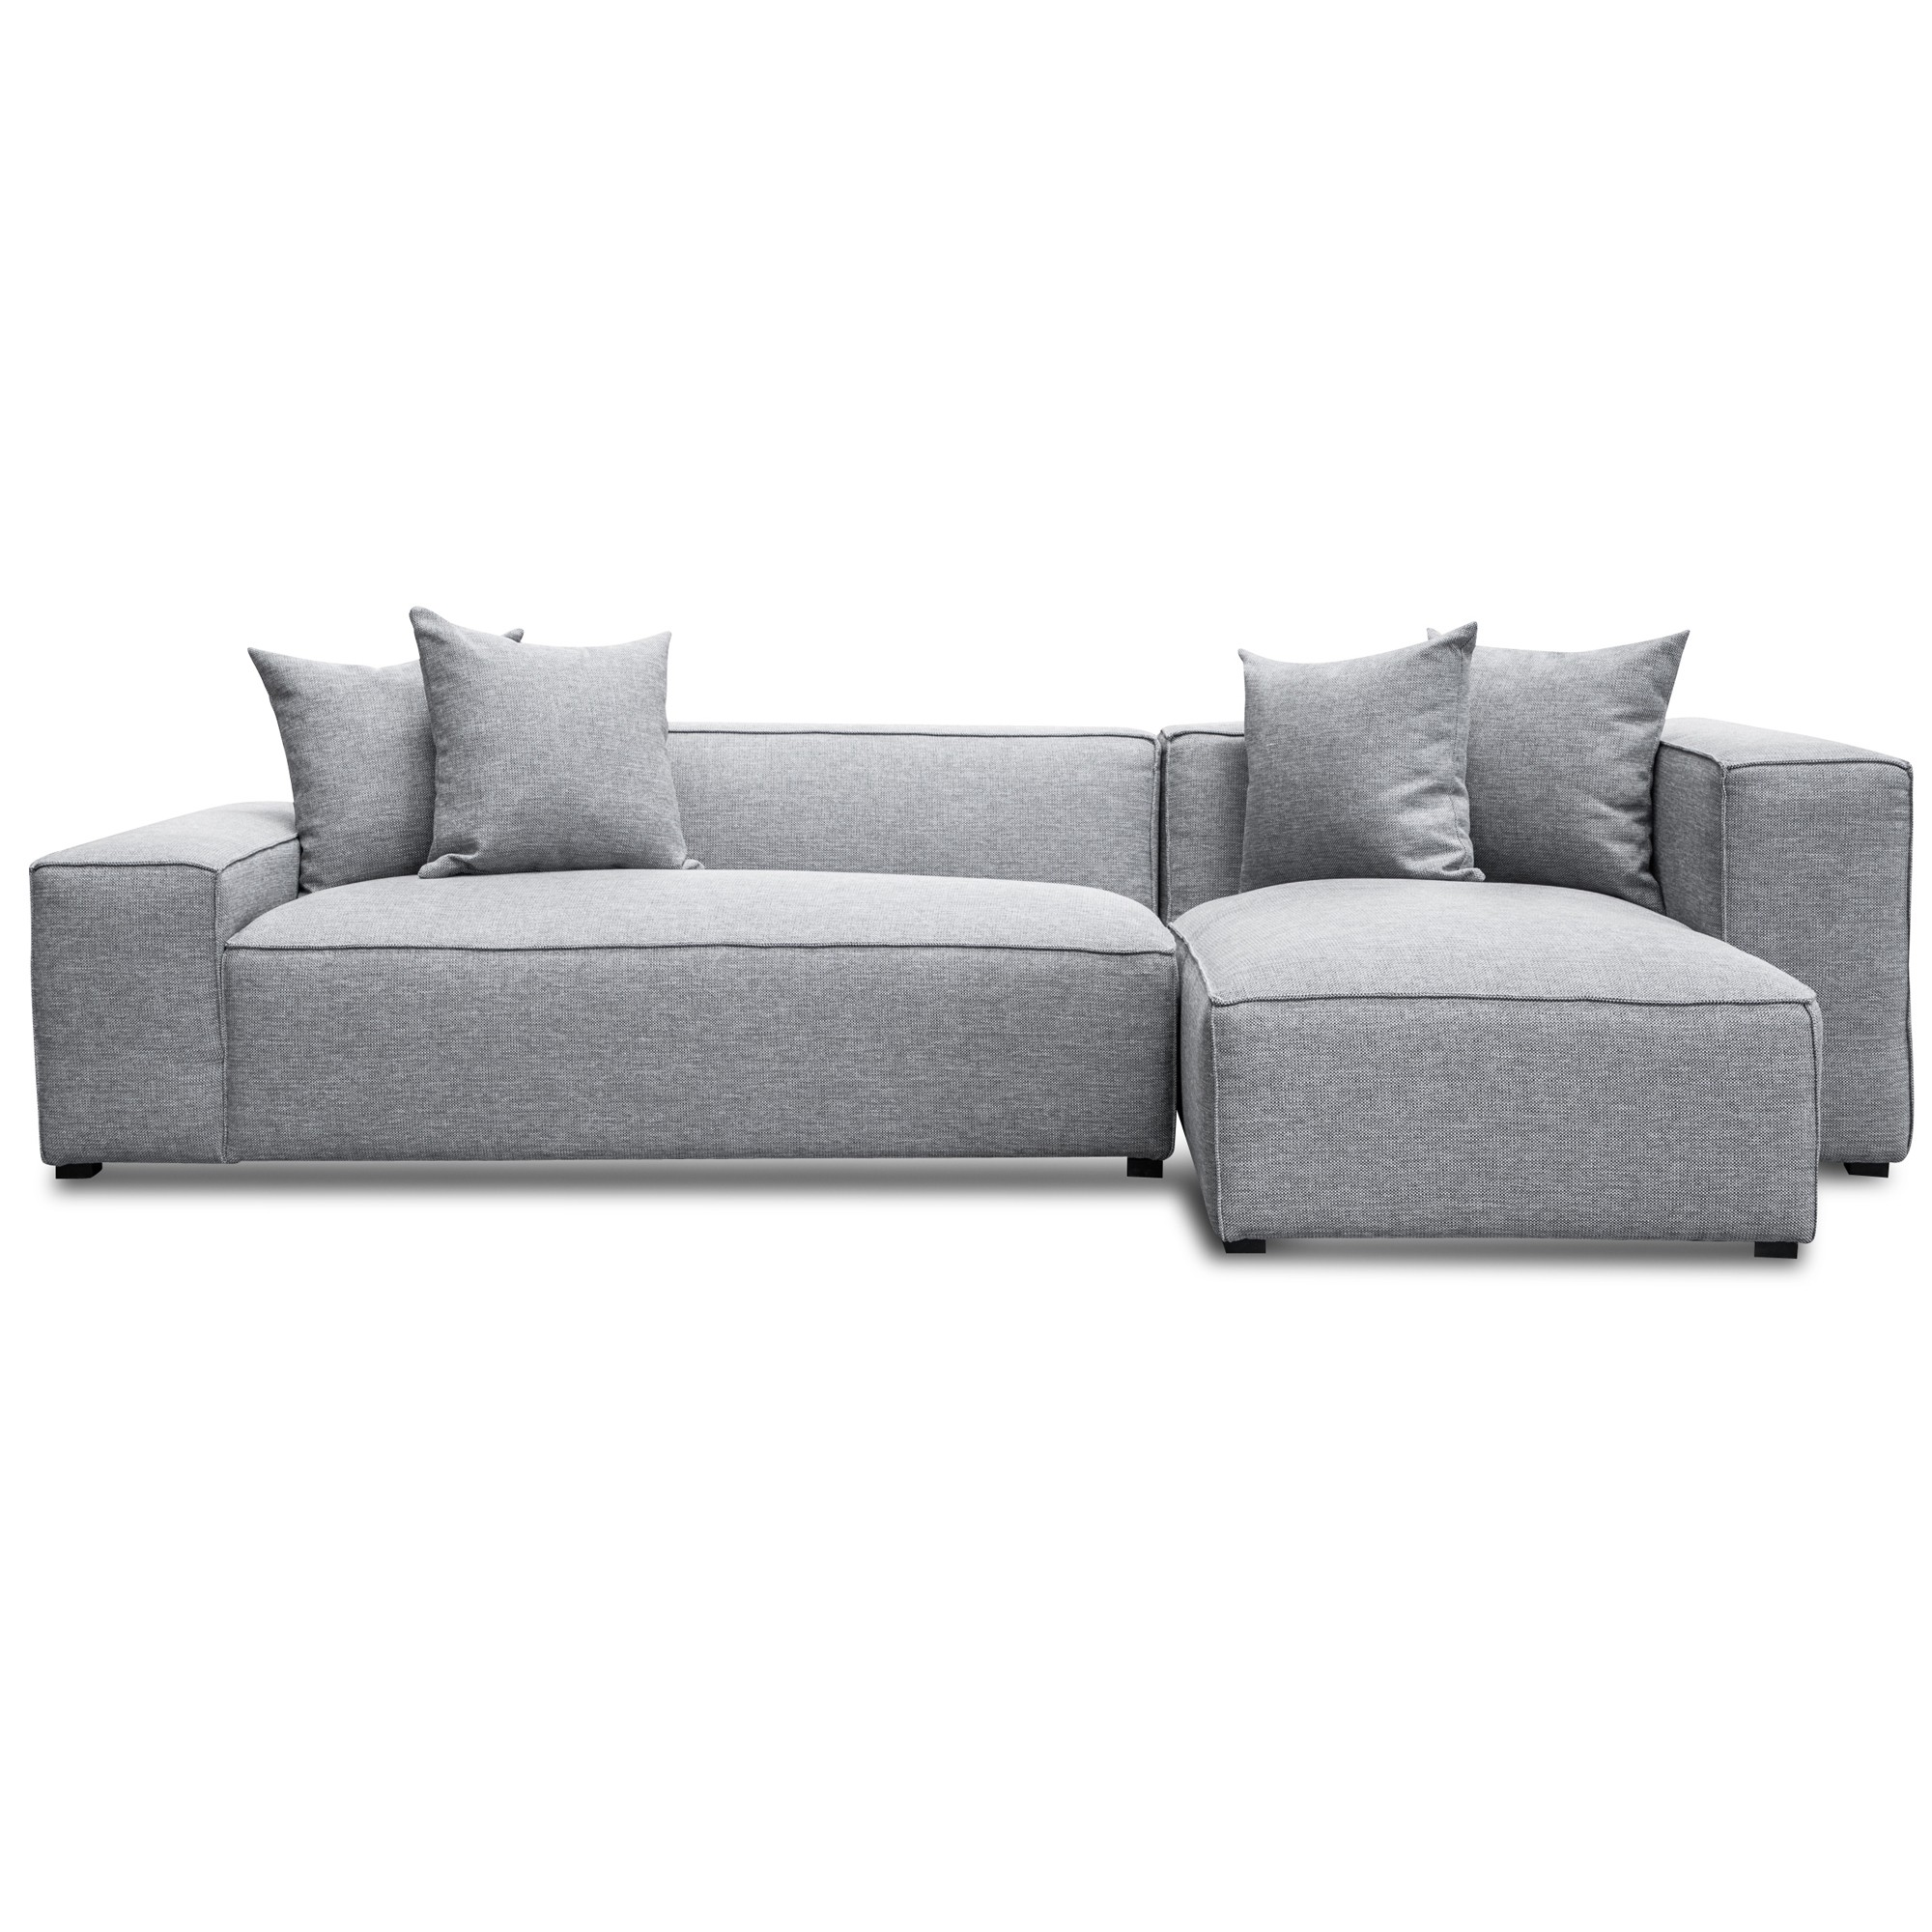 Ellis Fabric Modular Corner Sofa, 2 Seater with RHF Chaise, Coin Grey